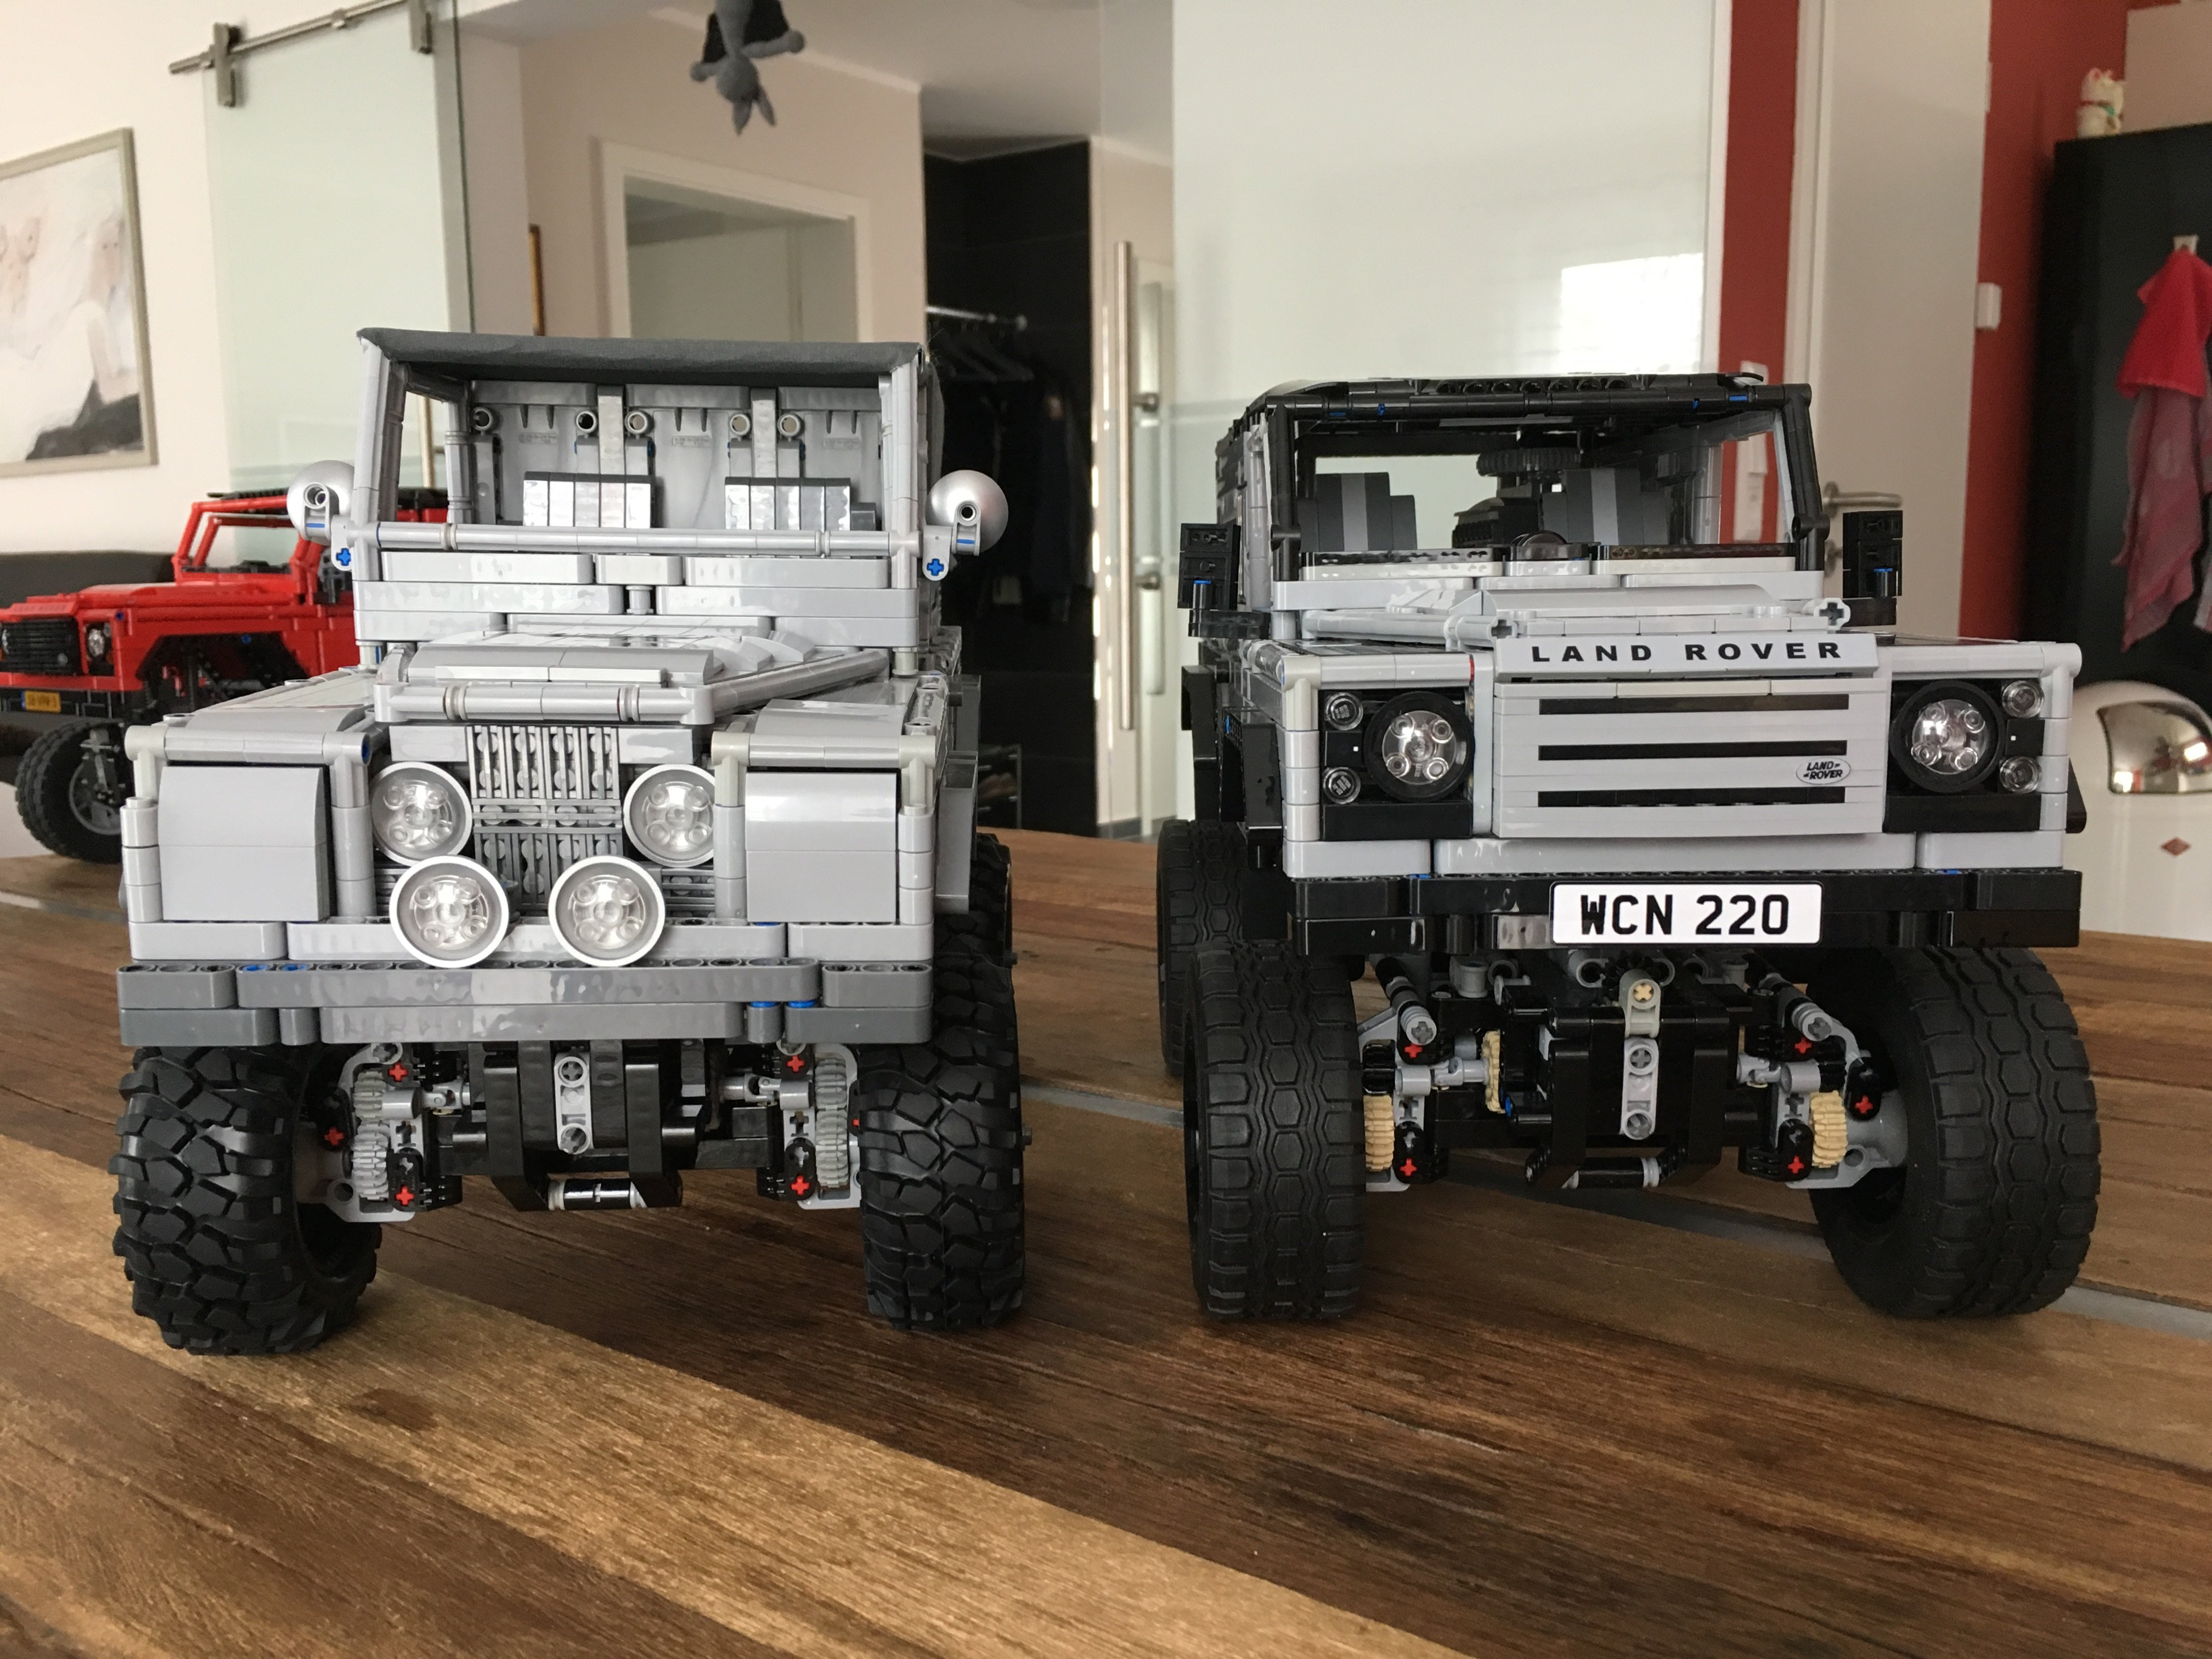 lego land rover instructions